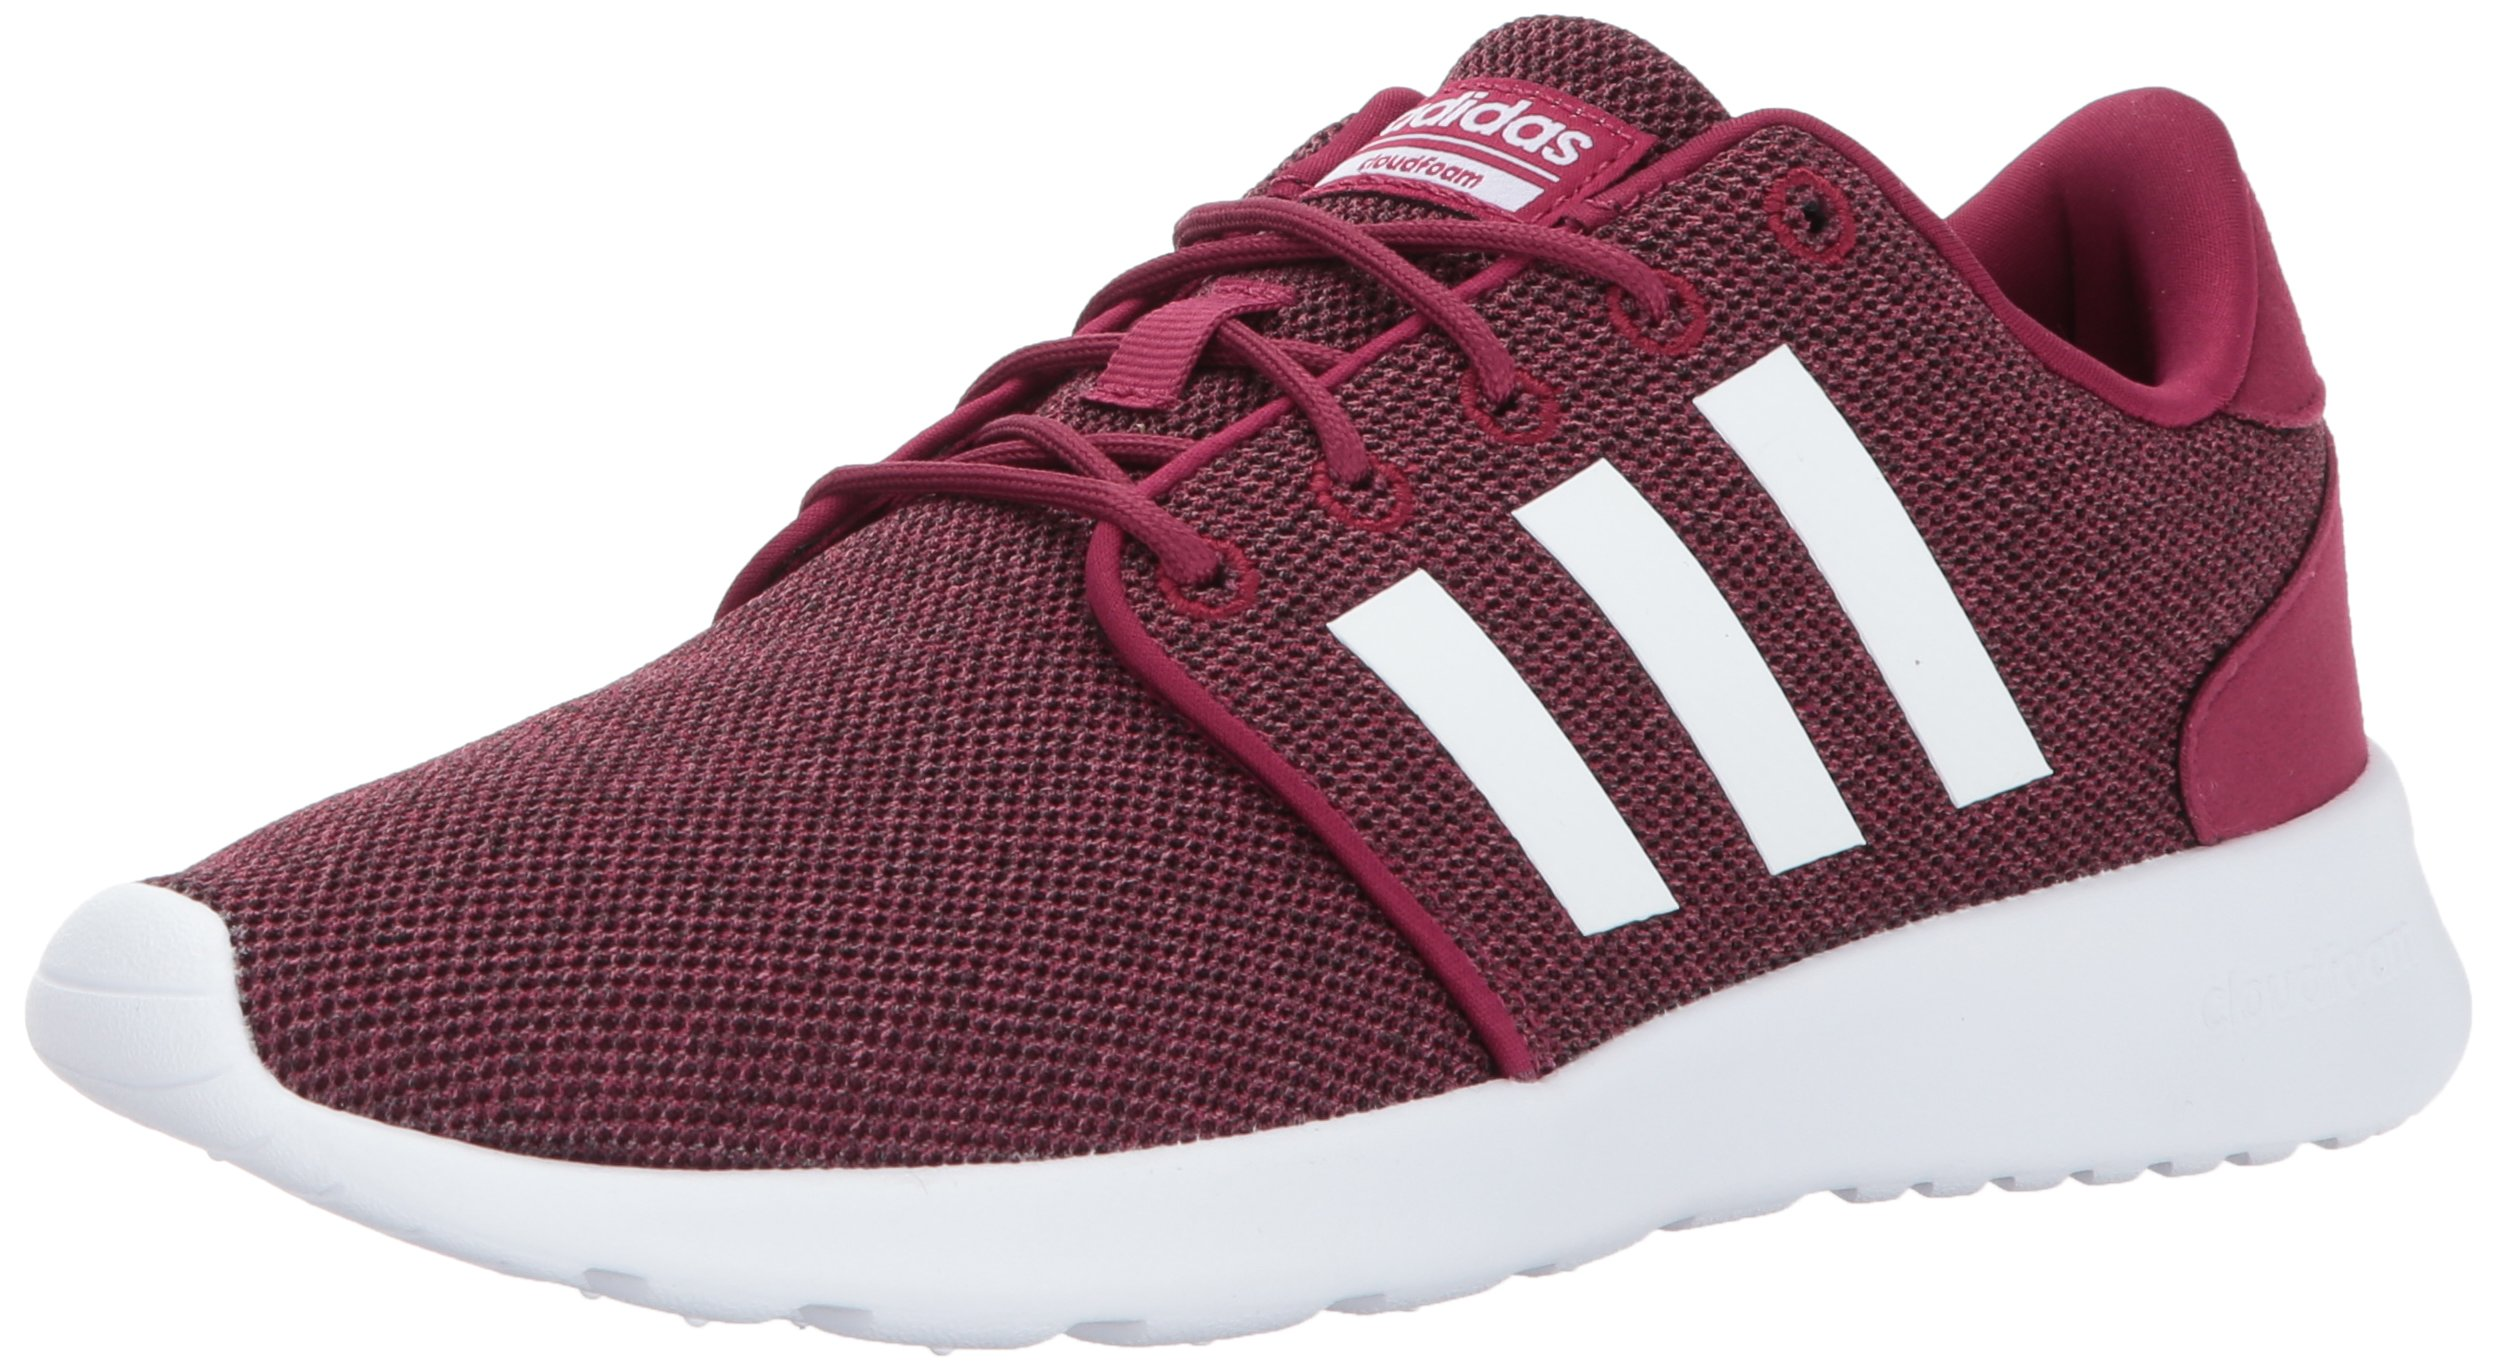 adidas Women's Cloudfoam QT Racer Running Shoe, Mystery Ruby/White/Black, ((9 M US) by adidas